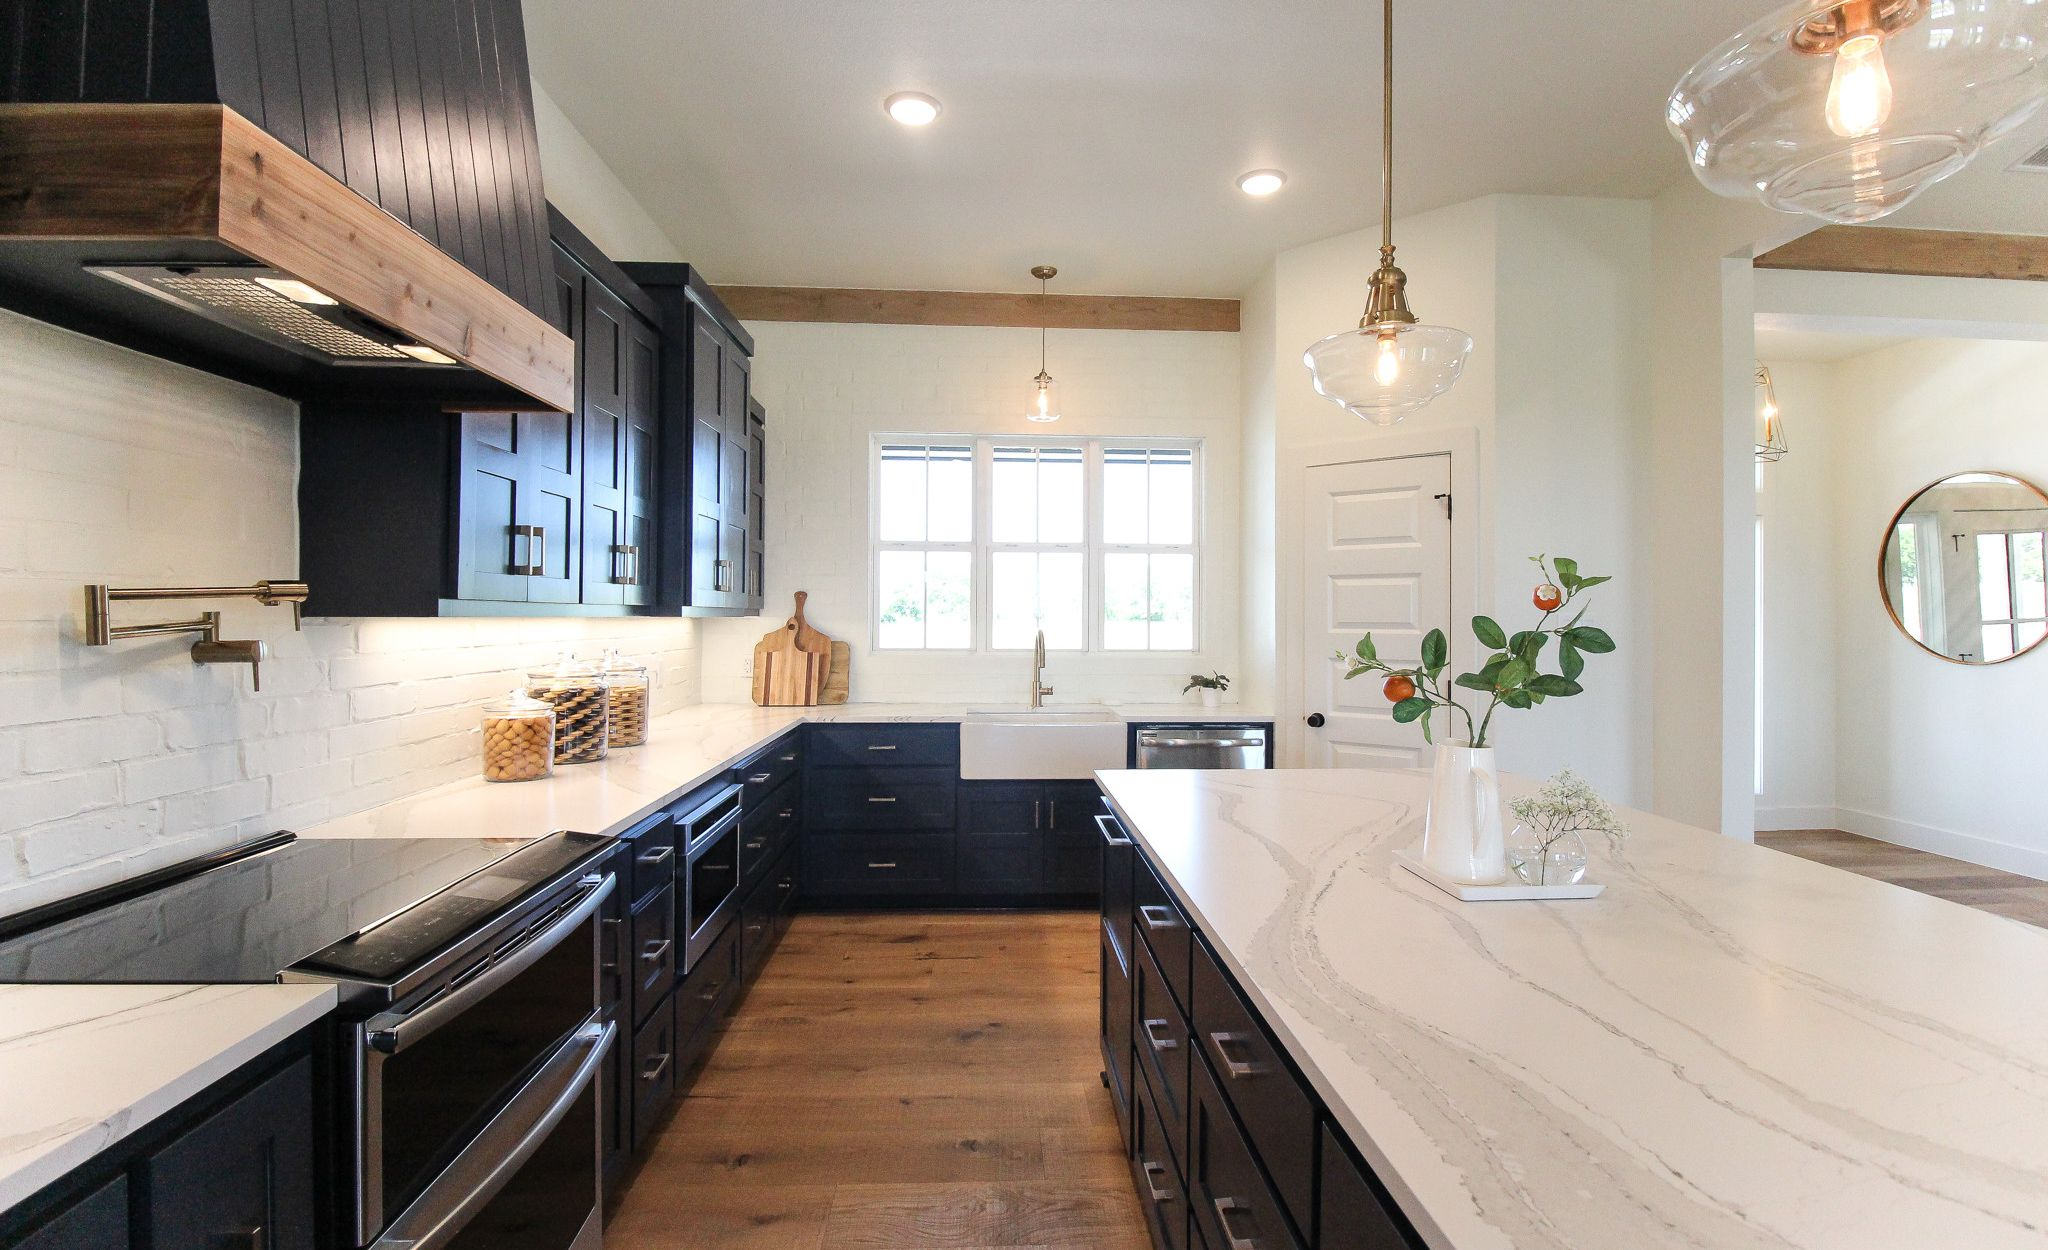 White marble-look quartz countertops paired with navy cabinets and white brick backsplash.